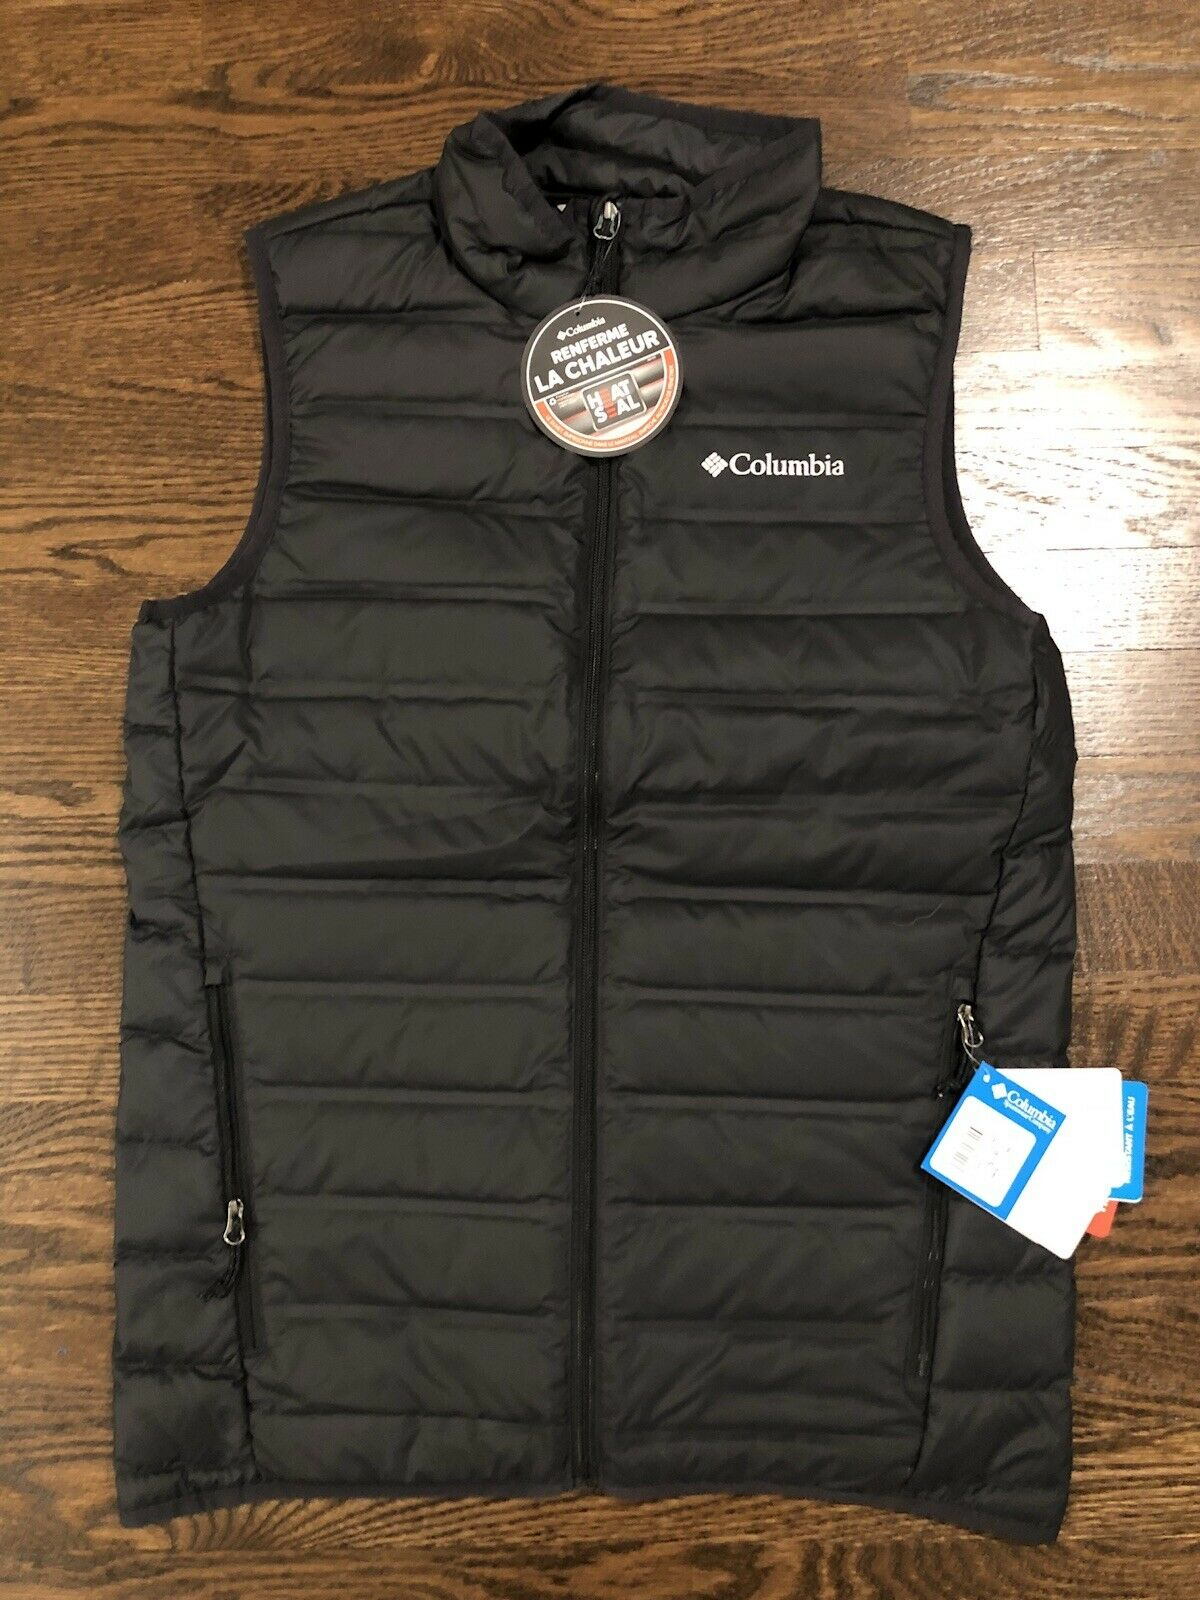 Columbia Men's Lake 22 Down Vest Lightweight Black Size Small - Great Hiking New